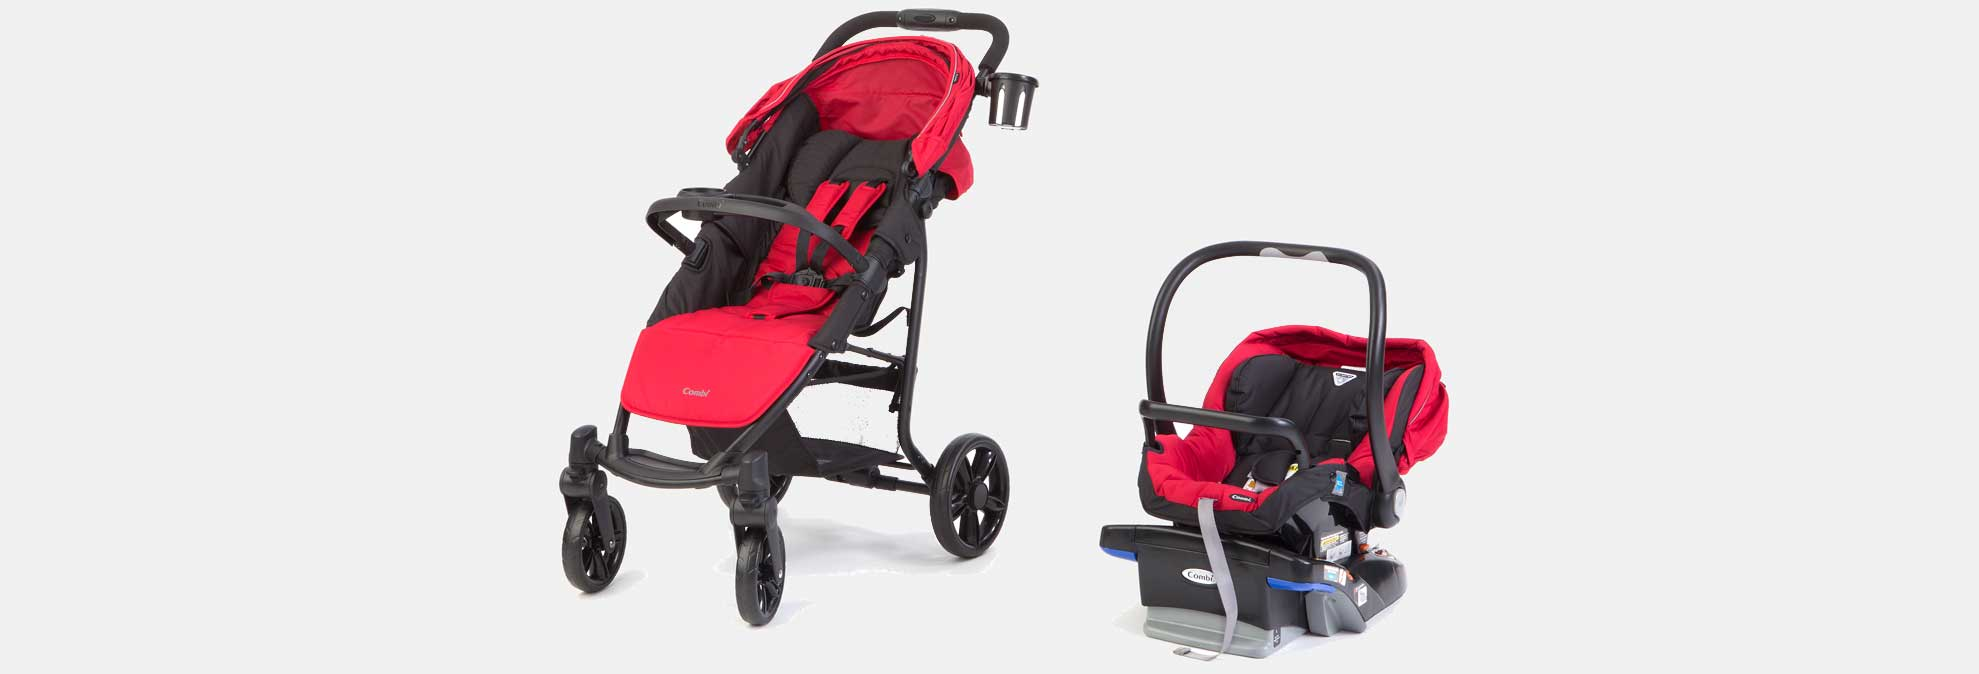 Combi Travel System Safety Risk Shuttle 6100 Consumer